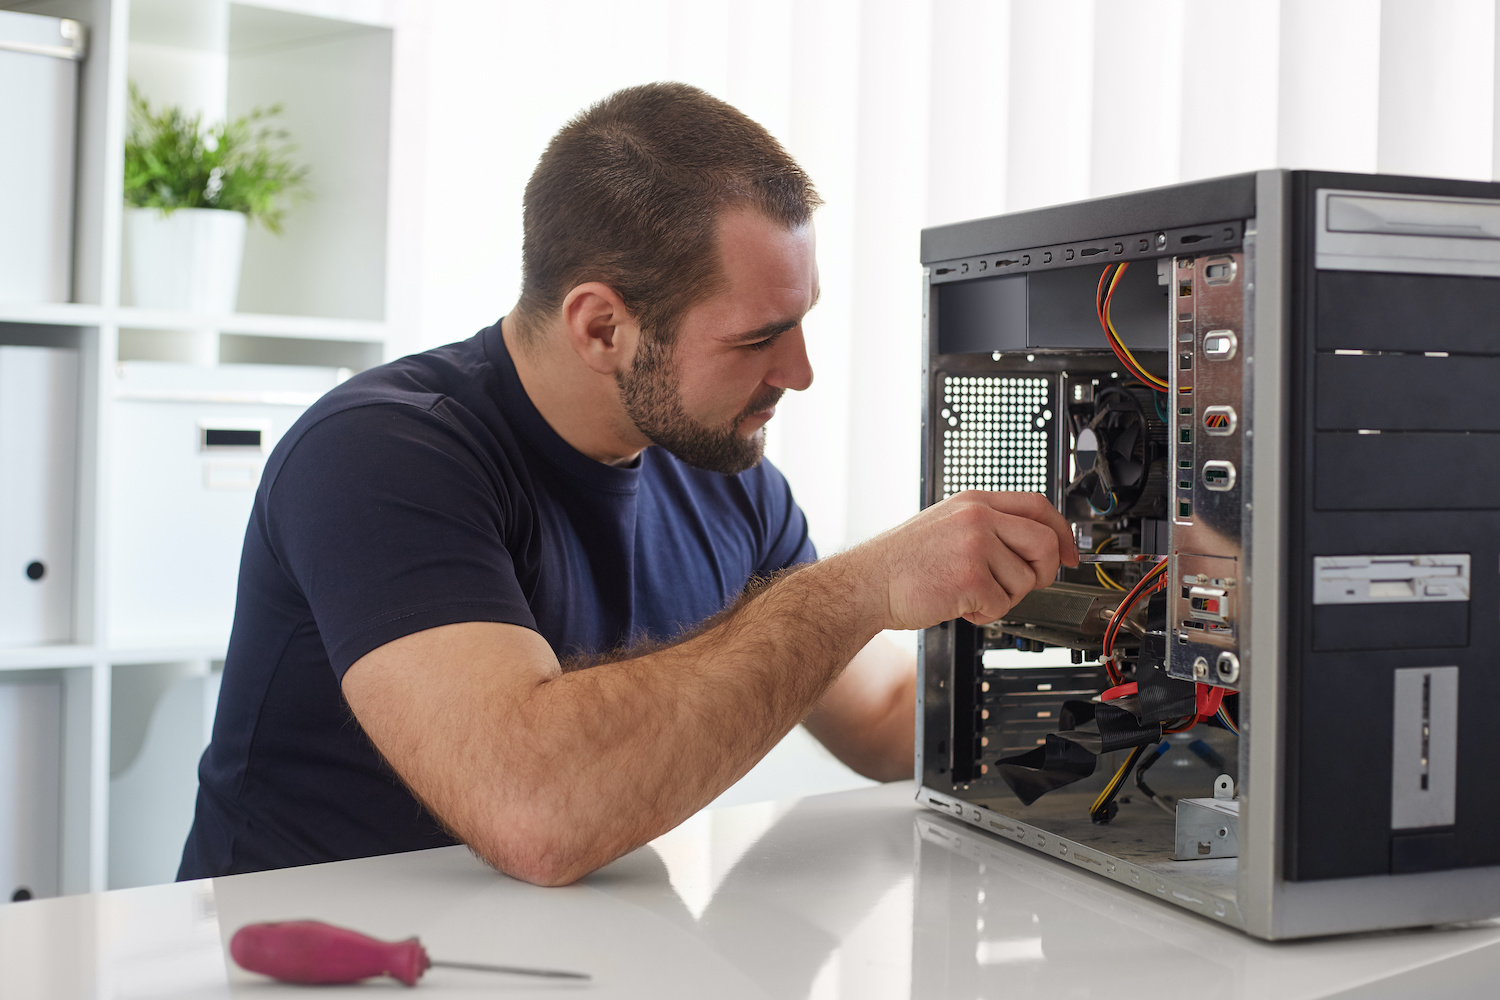 A computer repair technician fixing a computer. Repair technicians help with common computer problems and advanced repairs.